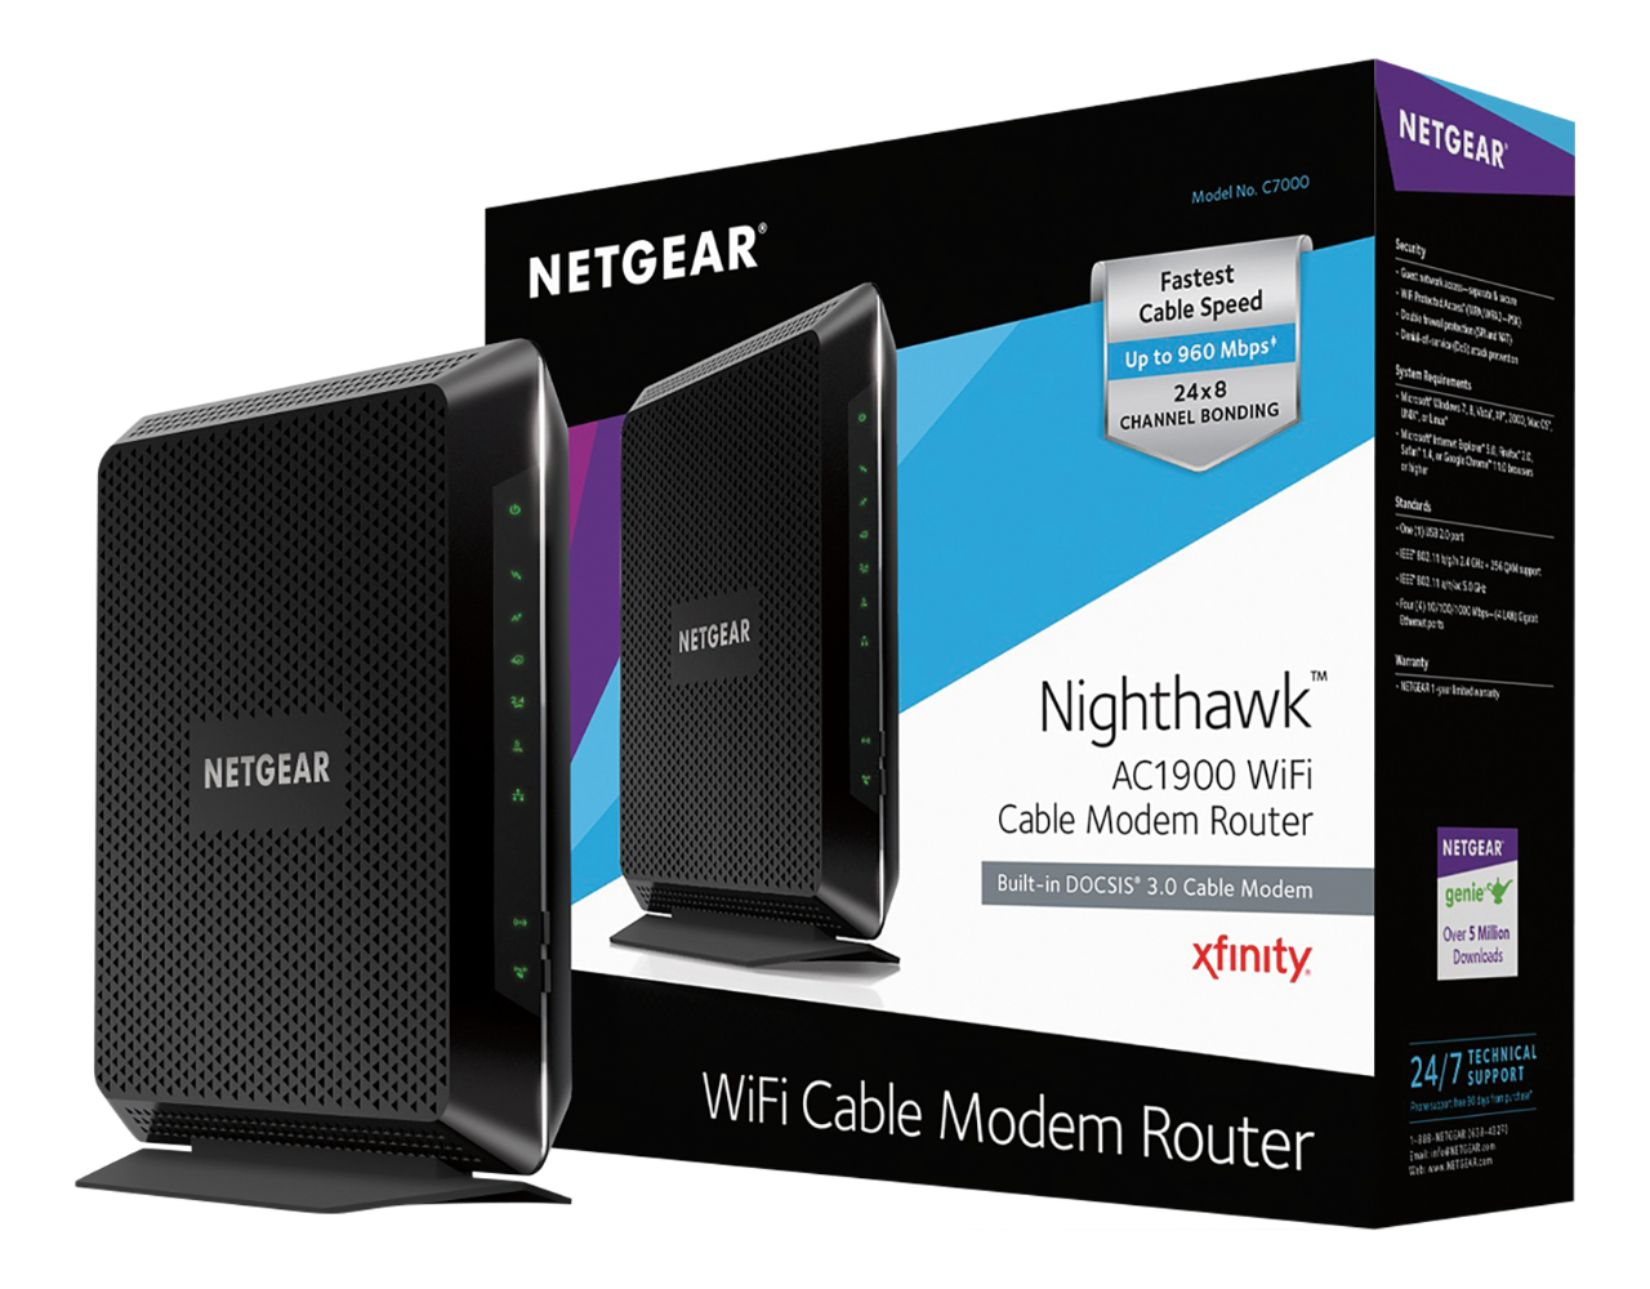 hight resolution of netgear nighthawk dual band ac1900 router with 24 x 8 docsis 3 0 cable modem black c7000 100nas best buy